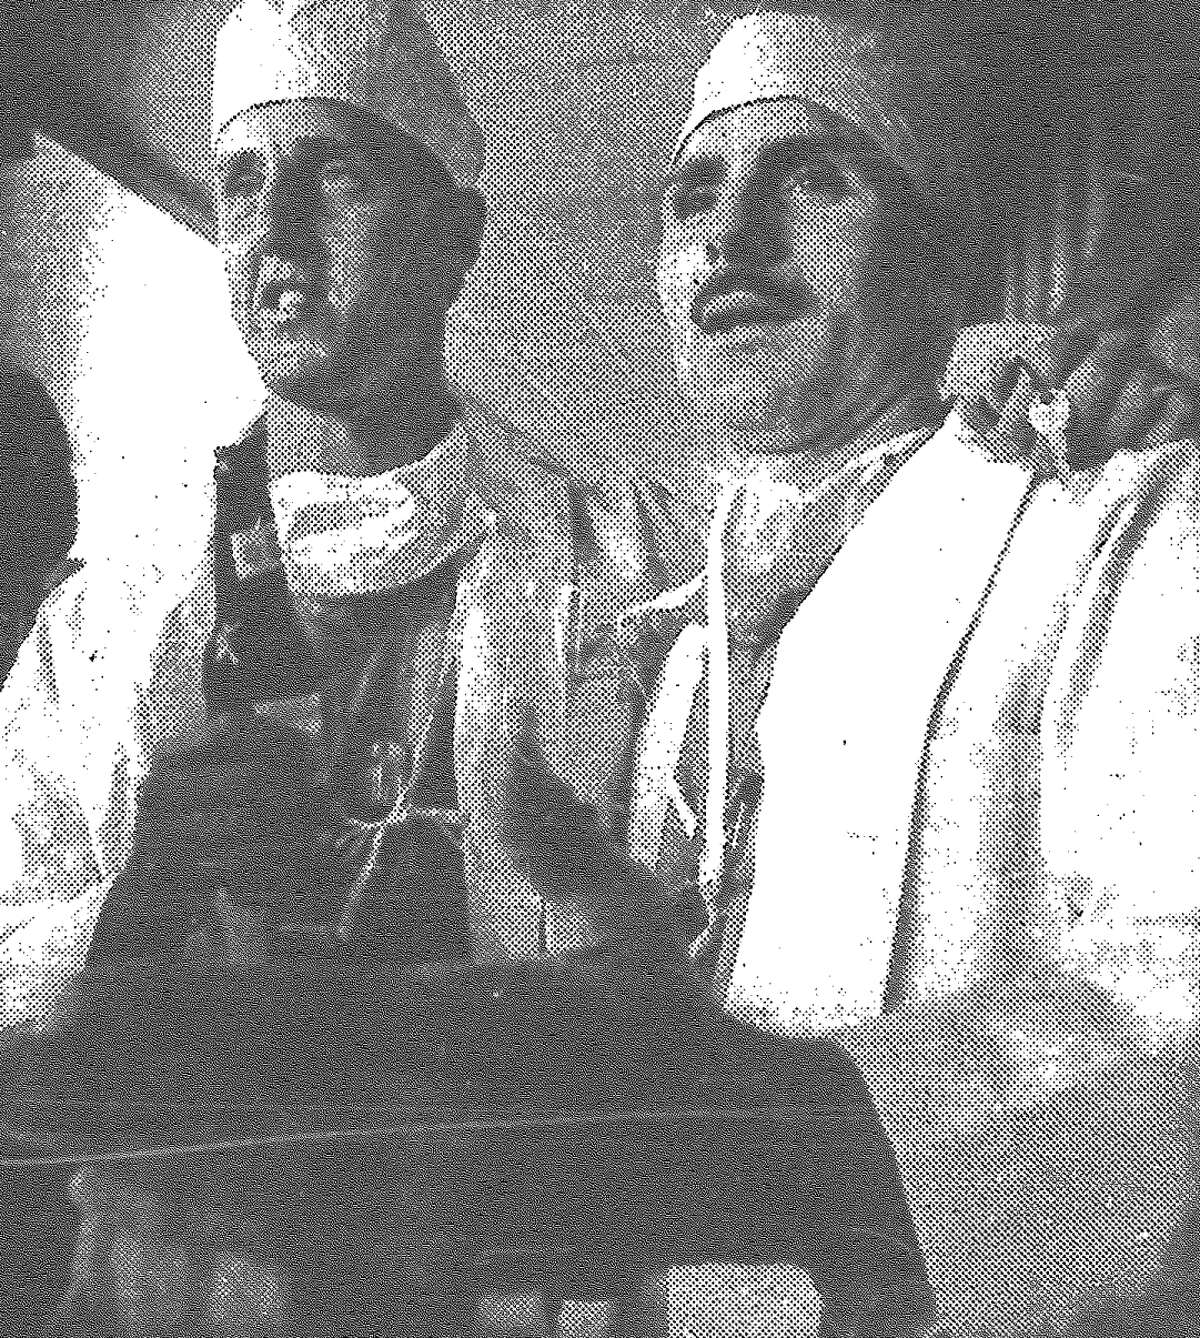 Among the M*A*S*H addicts who crowded Doc Holiday to bid adieu to the 11-year-old series Monday night were Mike Mokri and Joe Potoky. Droves of San Antonians dressed in Army fatigues, surgeon's garb and spinoffs from the